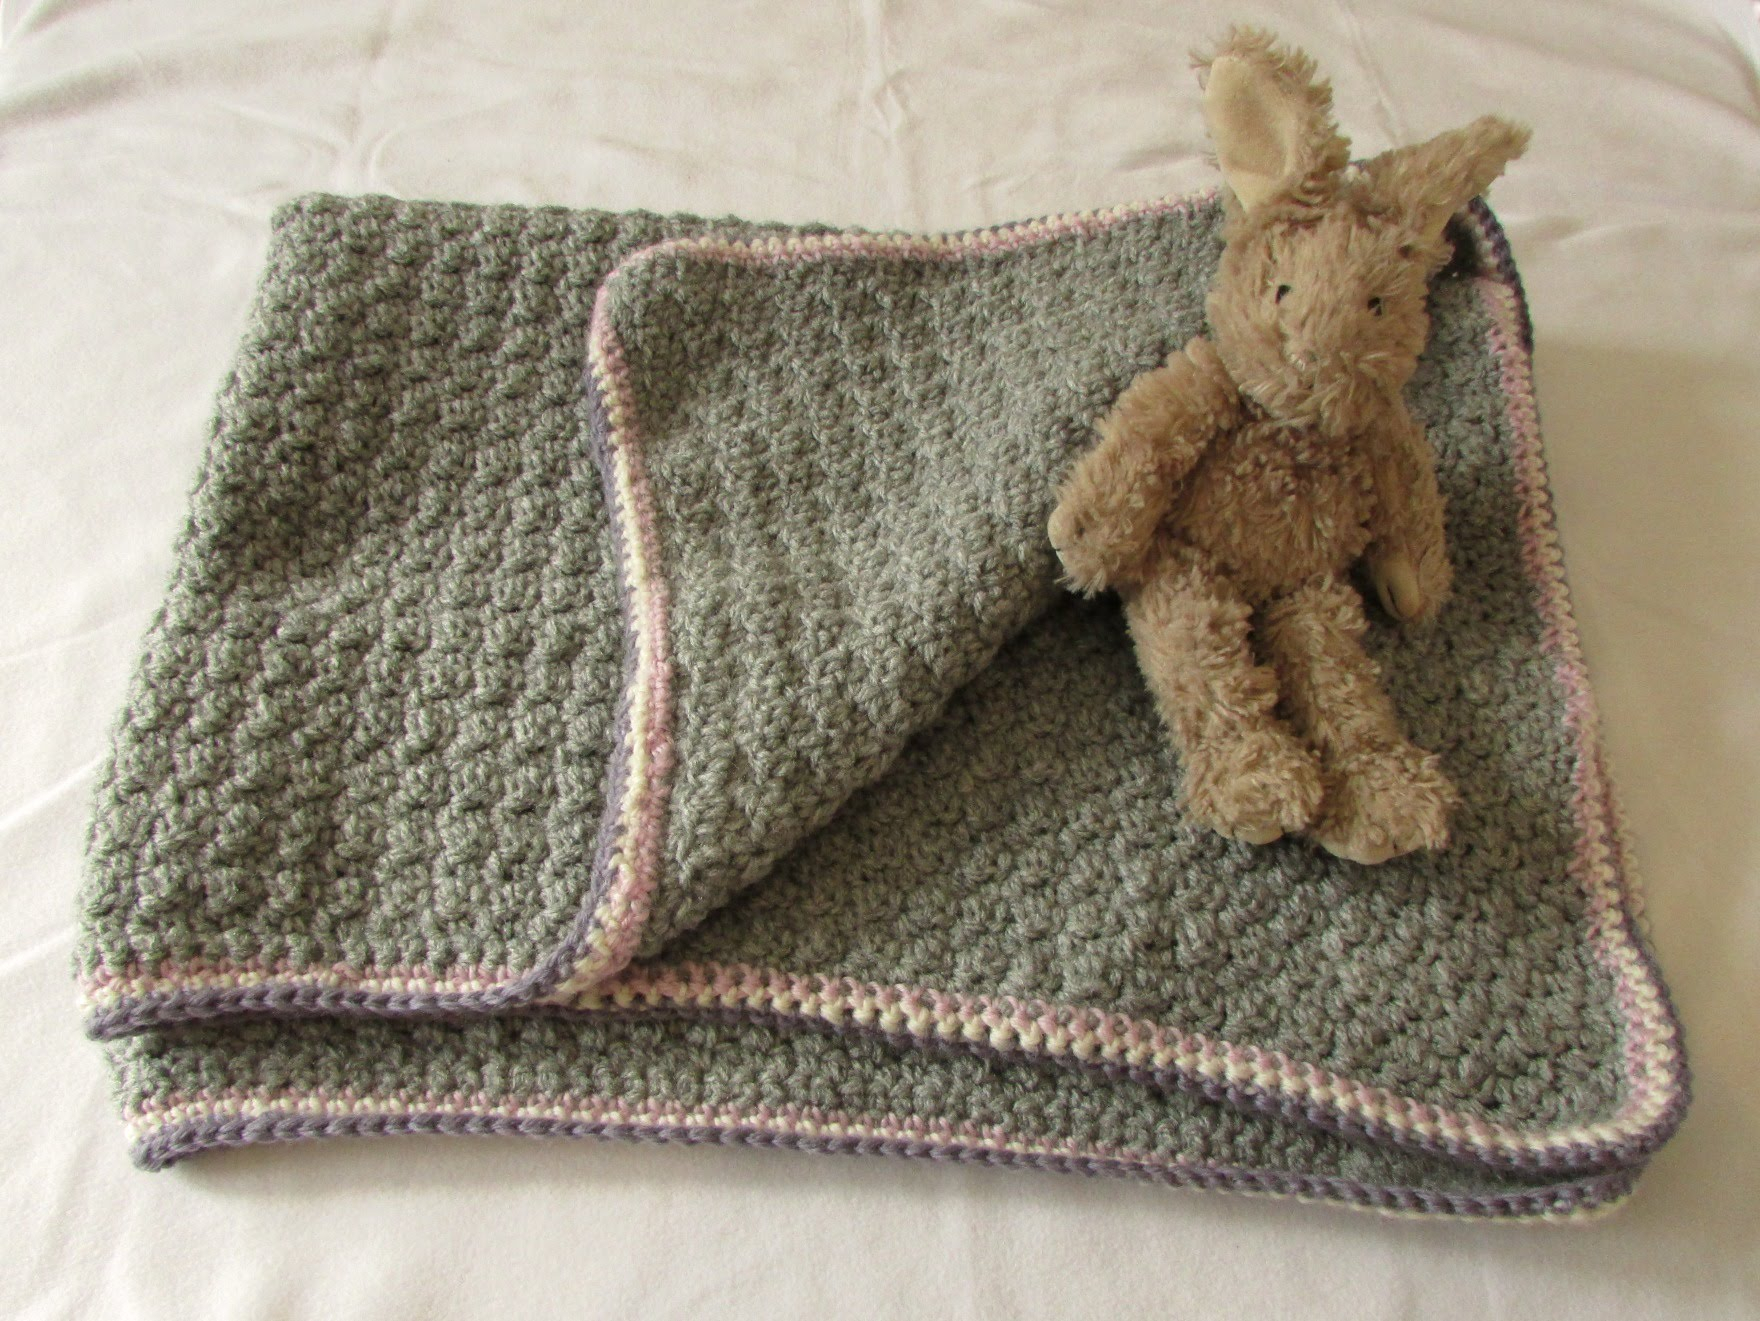 Begginer Crochet Projects Baby Blankets Very Easy Crochet Ba Blanket For Beginners Quick Afghan Throw